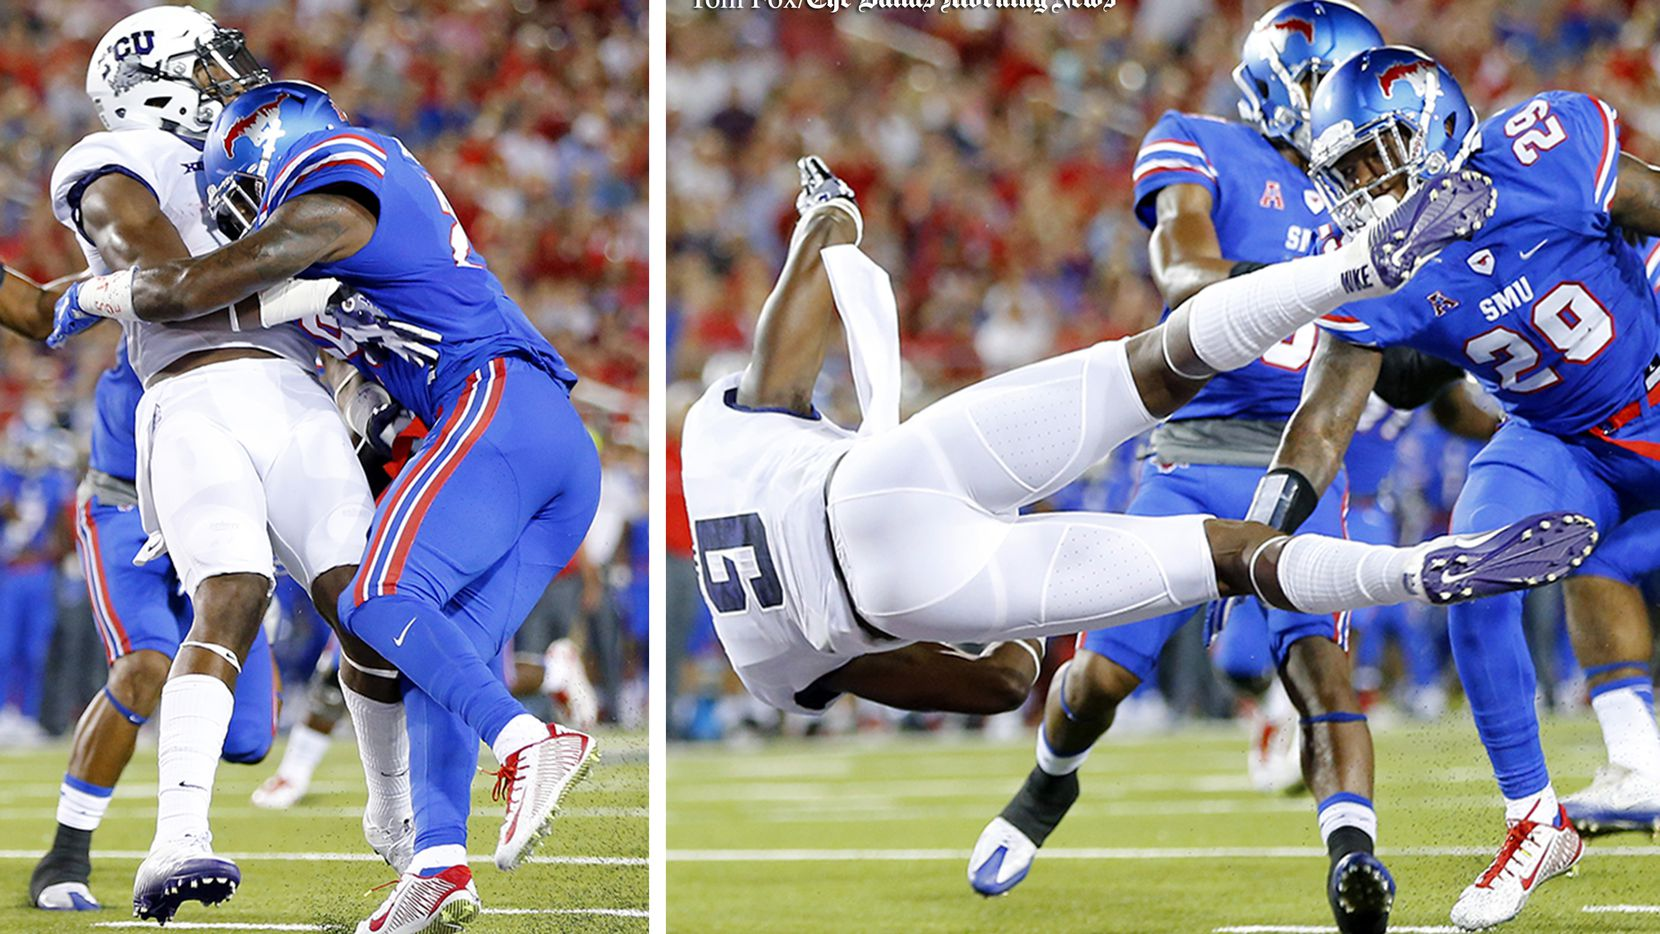 Southern Methodist Mustangs defensive back Darrion Millines (29) makes helmet to helmet contact on TCU Horned Frogs wide receiver John Diarse (9) at Gerald J. Ford Stadium in University Park, Texas, Friday, September 23, 2016. Millines was ejected from the game for targeting.